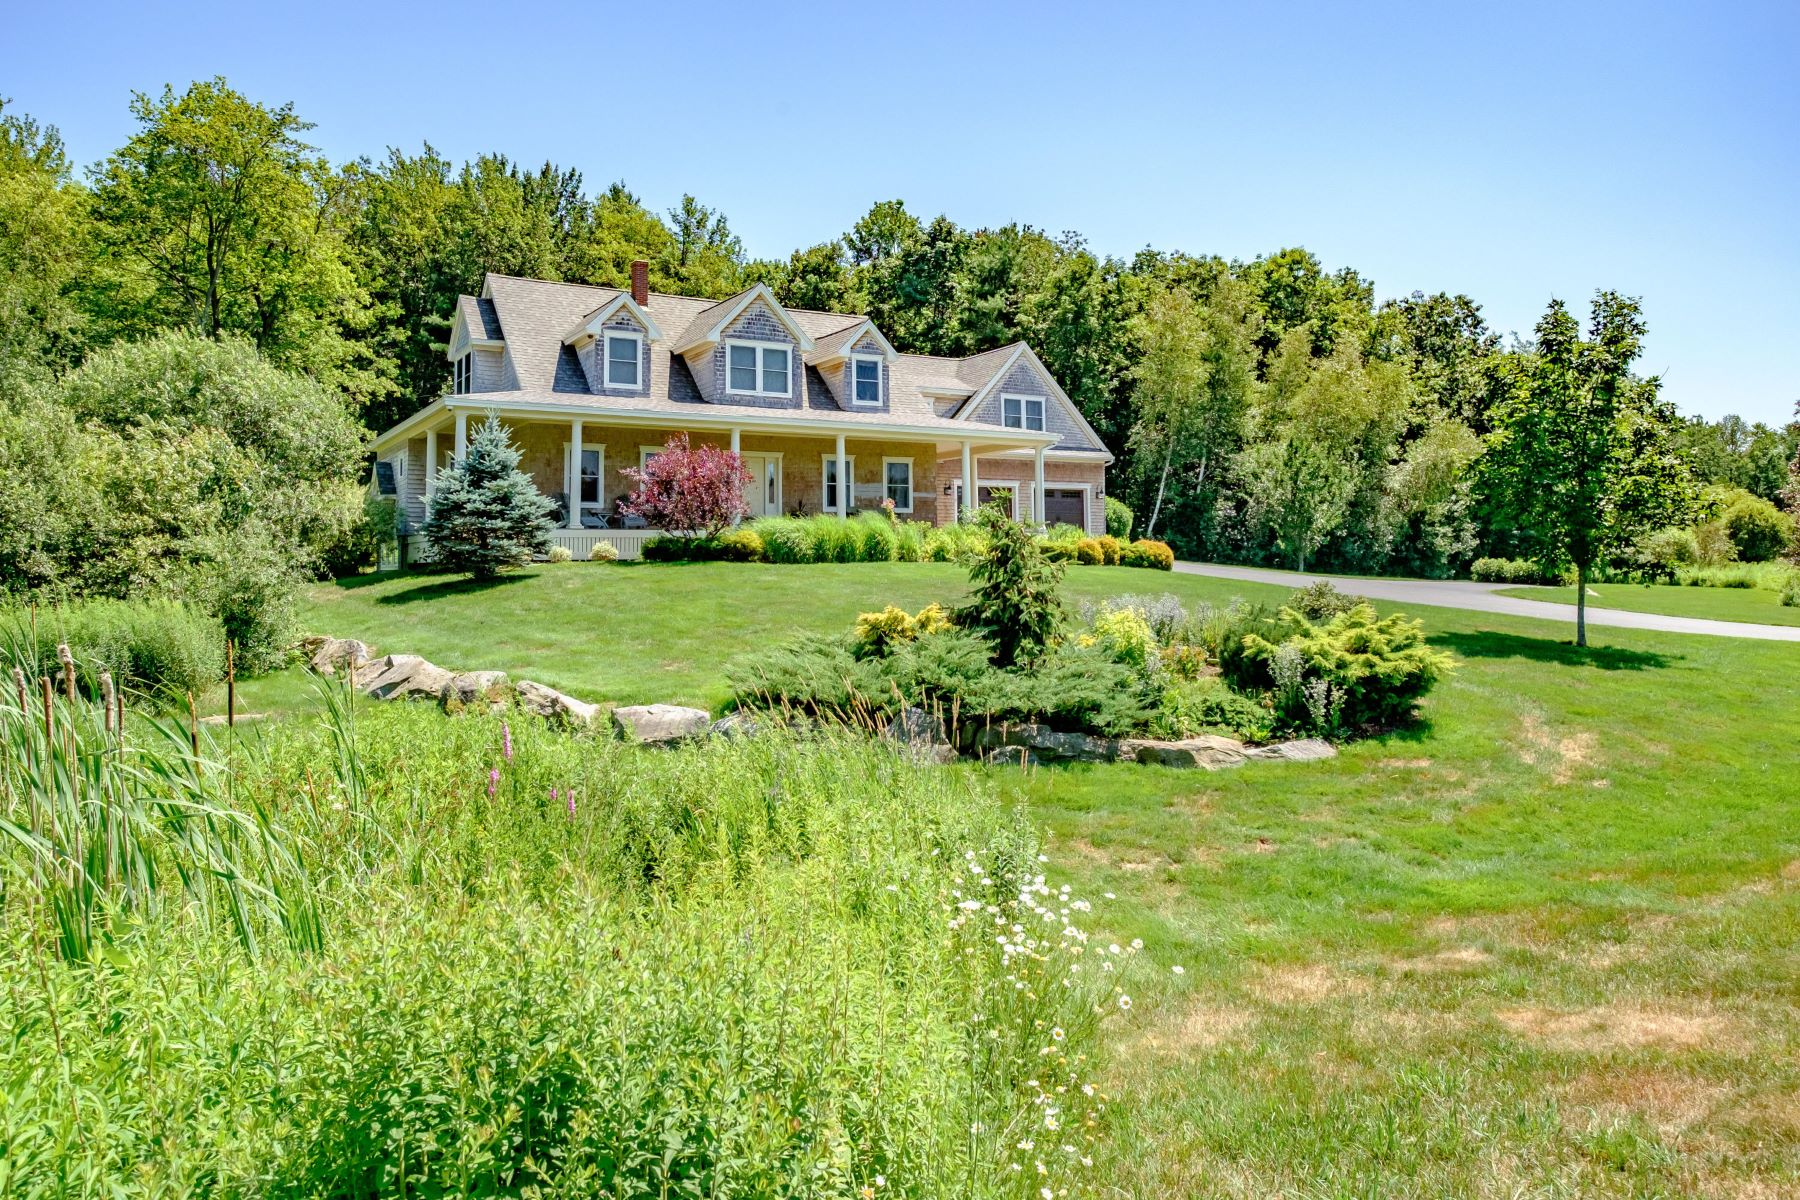 Single Family Homes for Sale at 17 Fieldstone Lane Falmouth, Maine 04105 United States